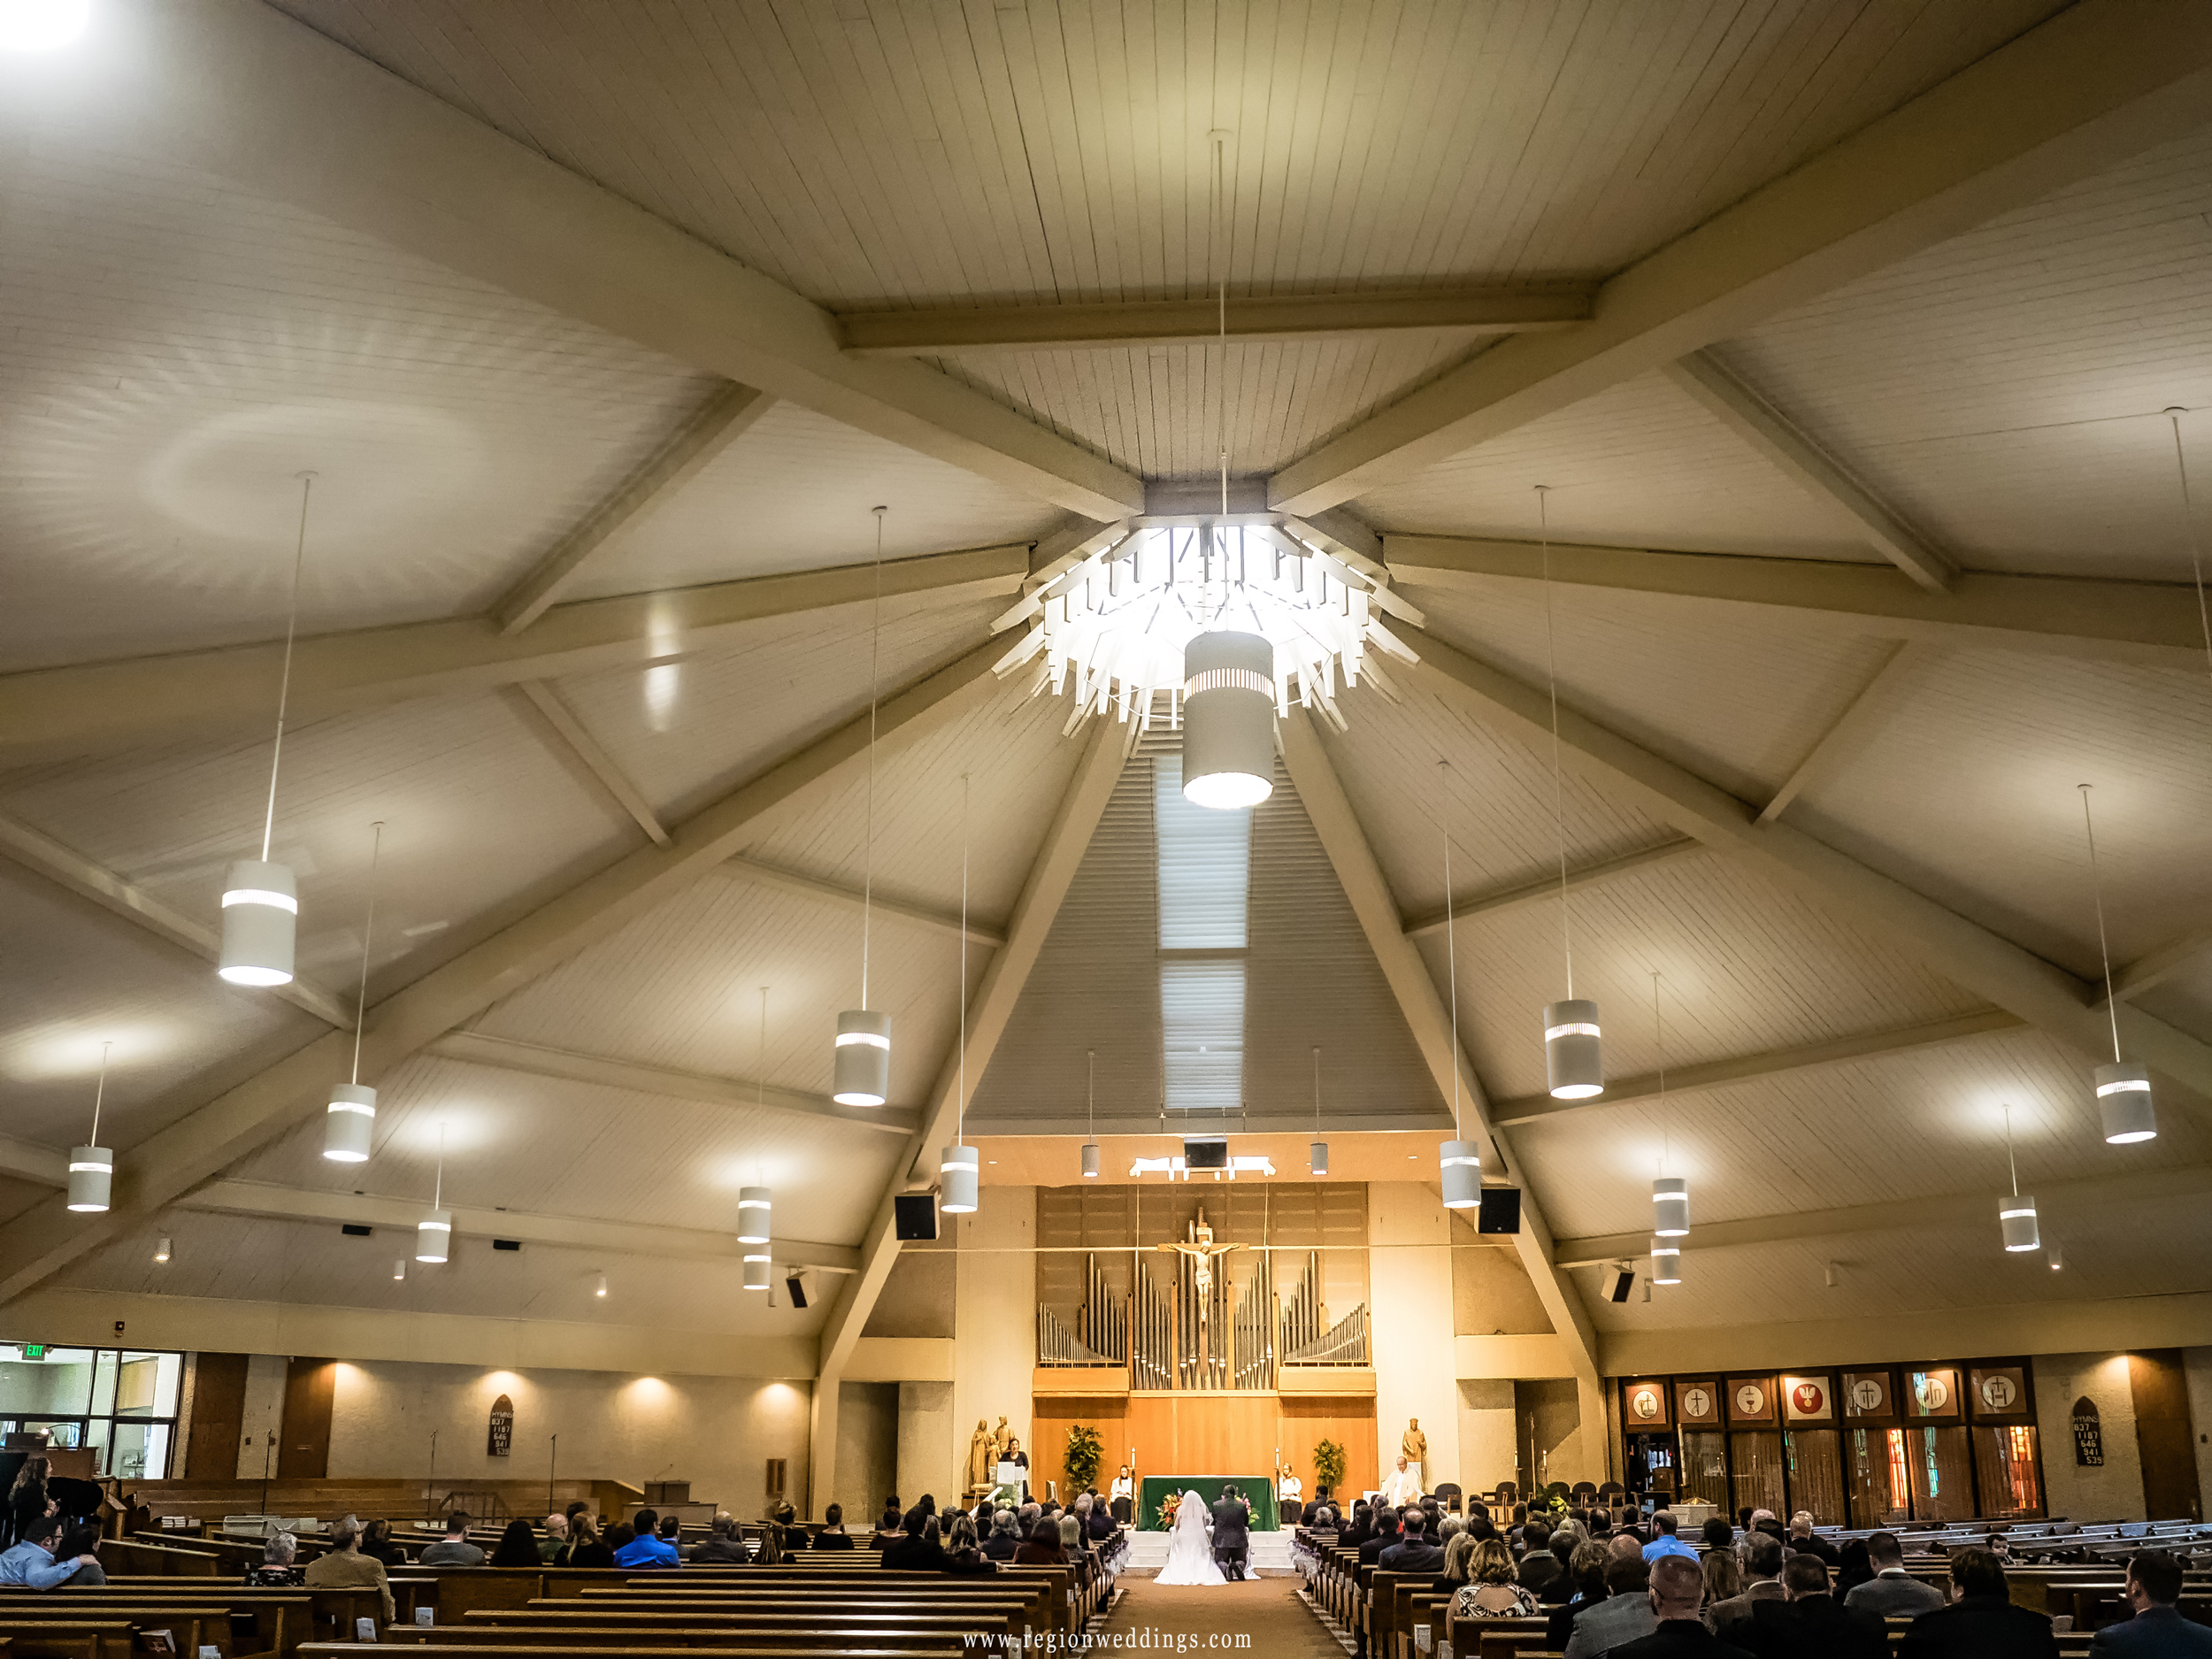 Wedding ceremony at St. Thomas More Church in Munster, Indiana.